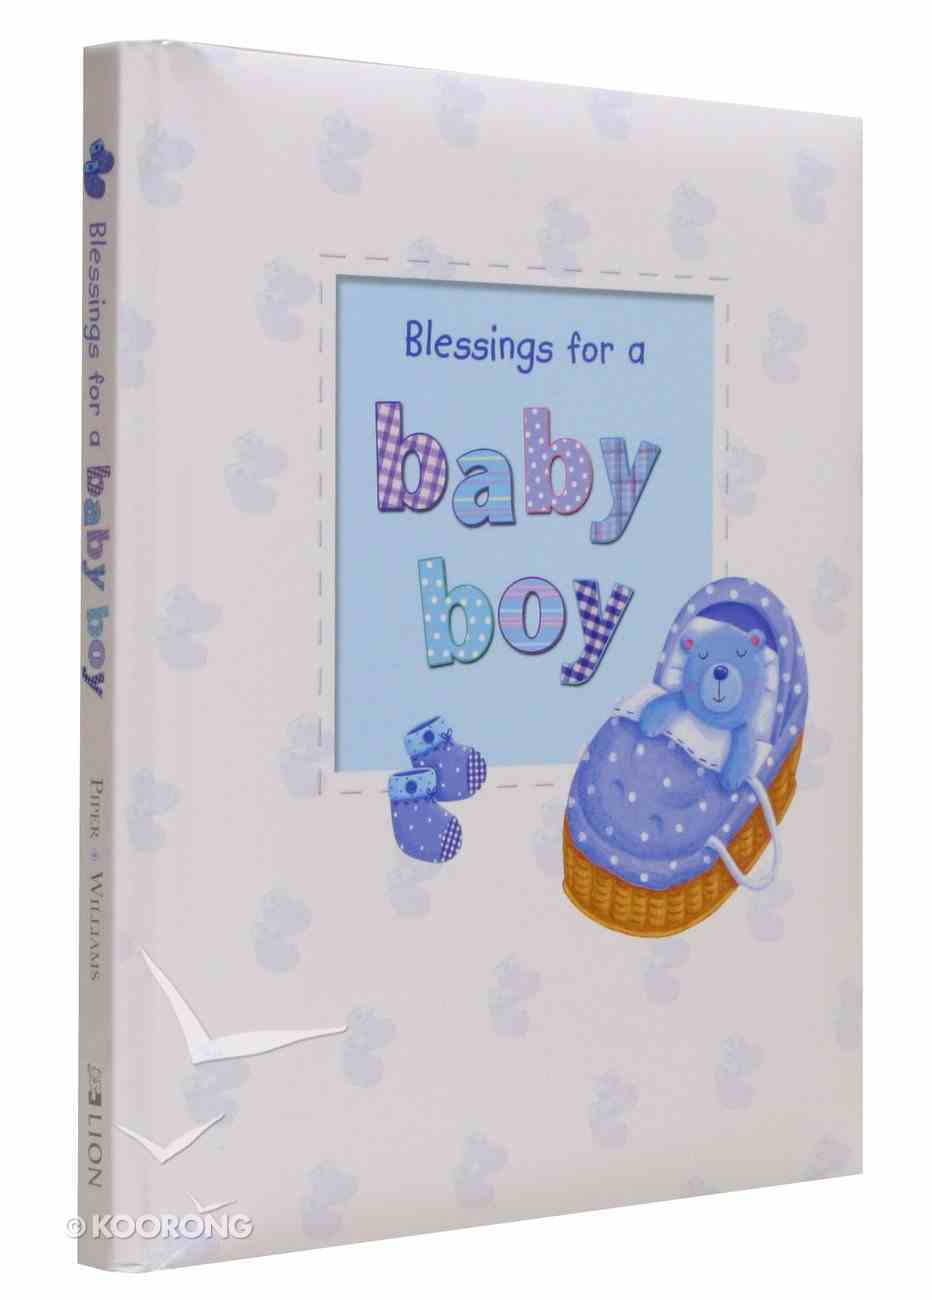 Blessings For a Baby Boy Hardback